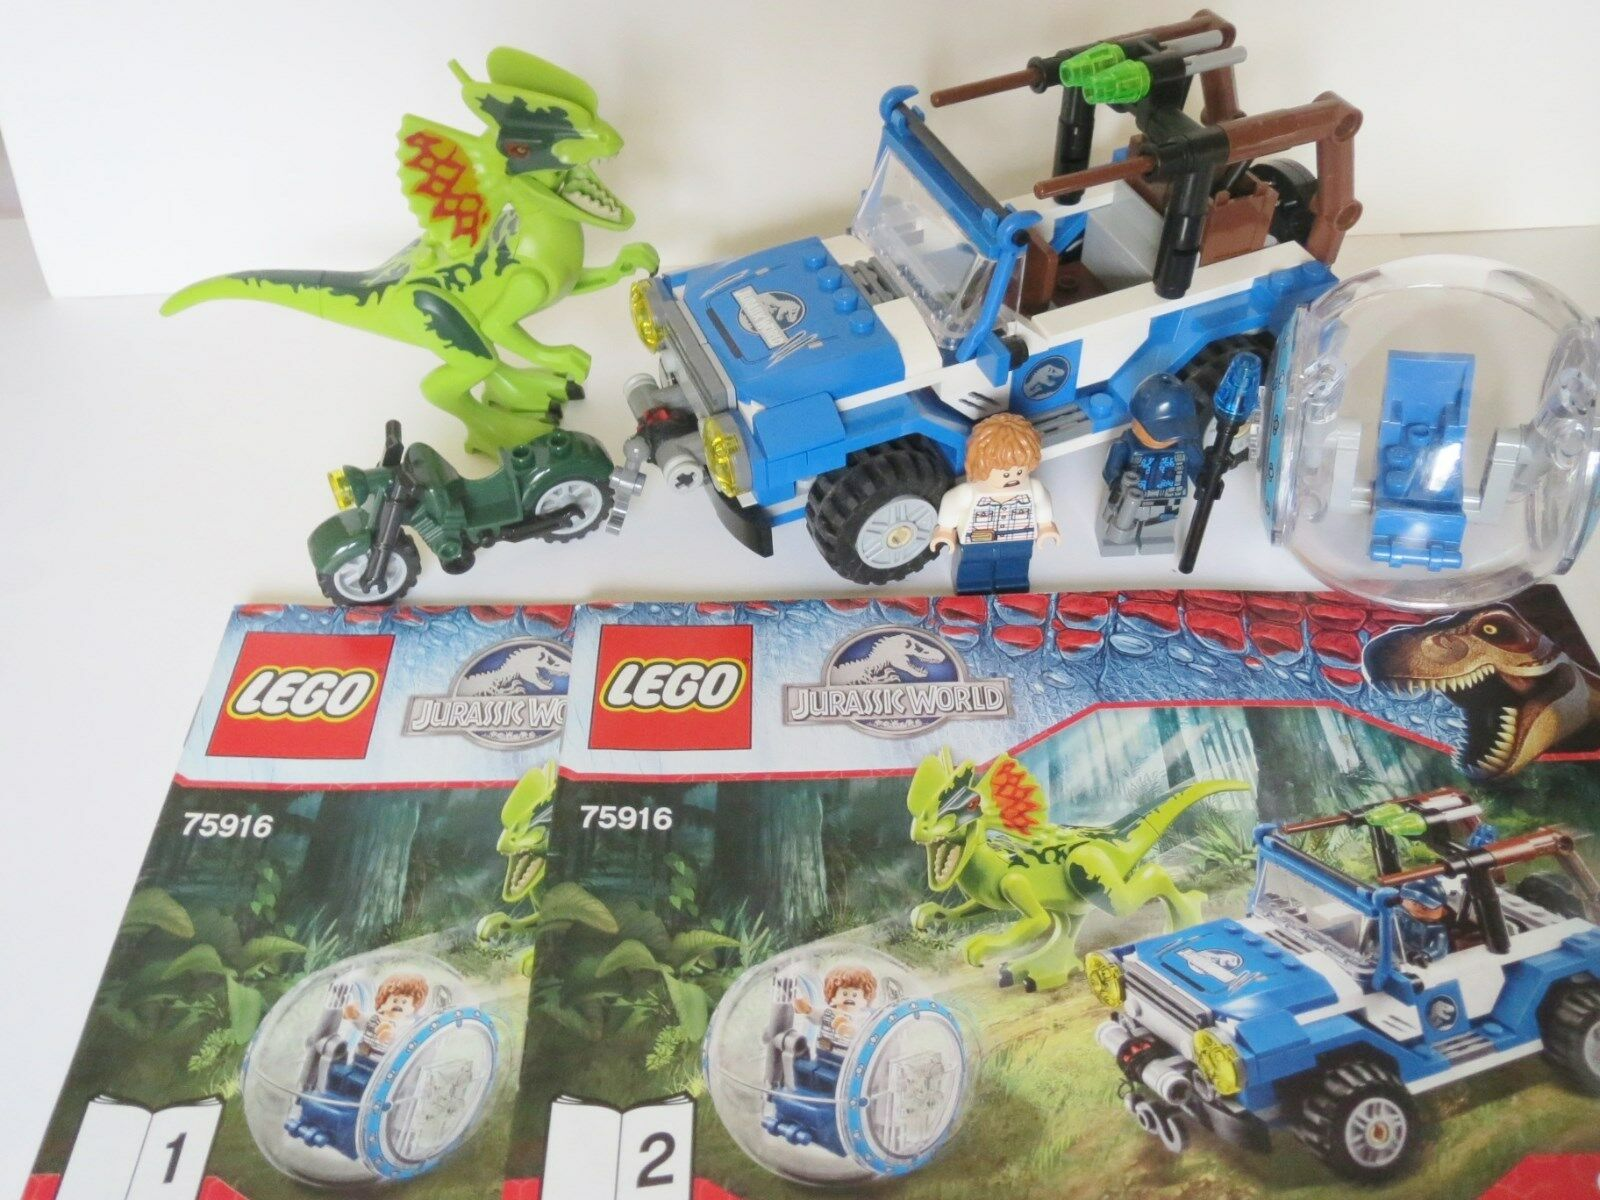 Lego Jurassic World; Dilophosaurus Ambush set 75916 dino.